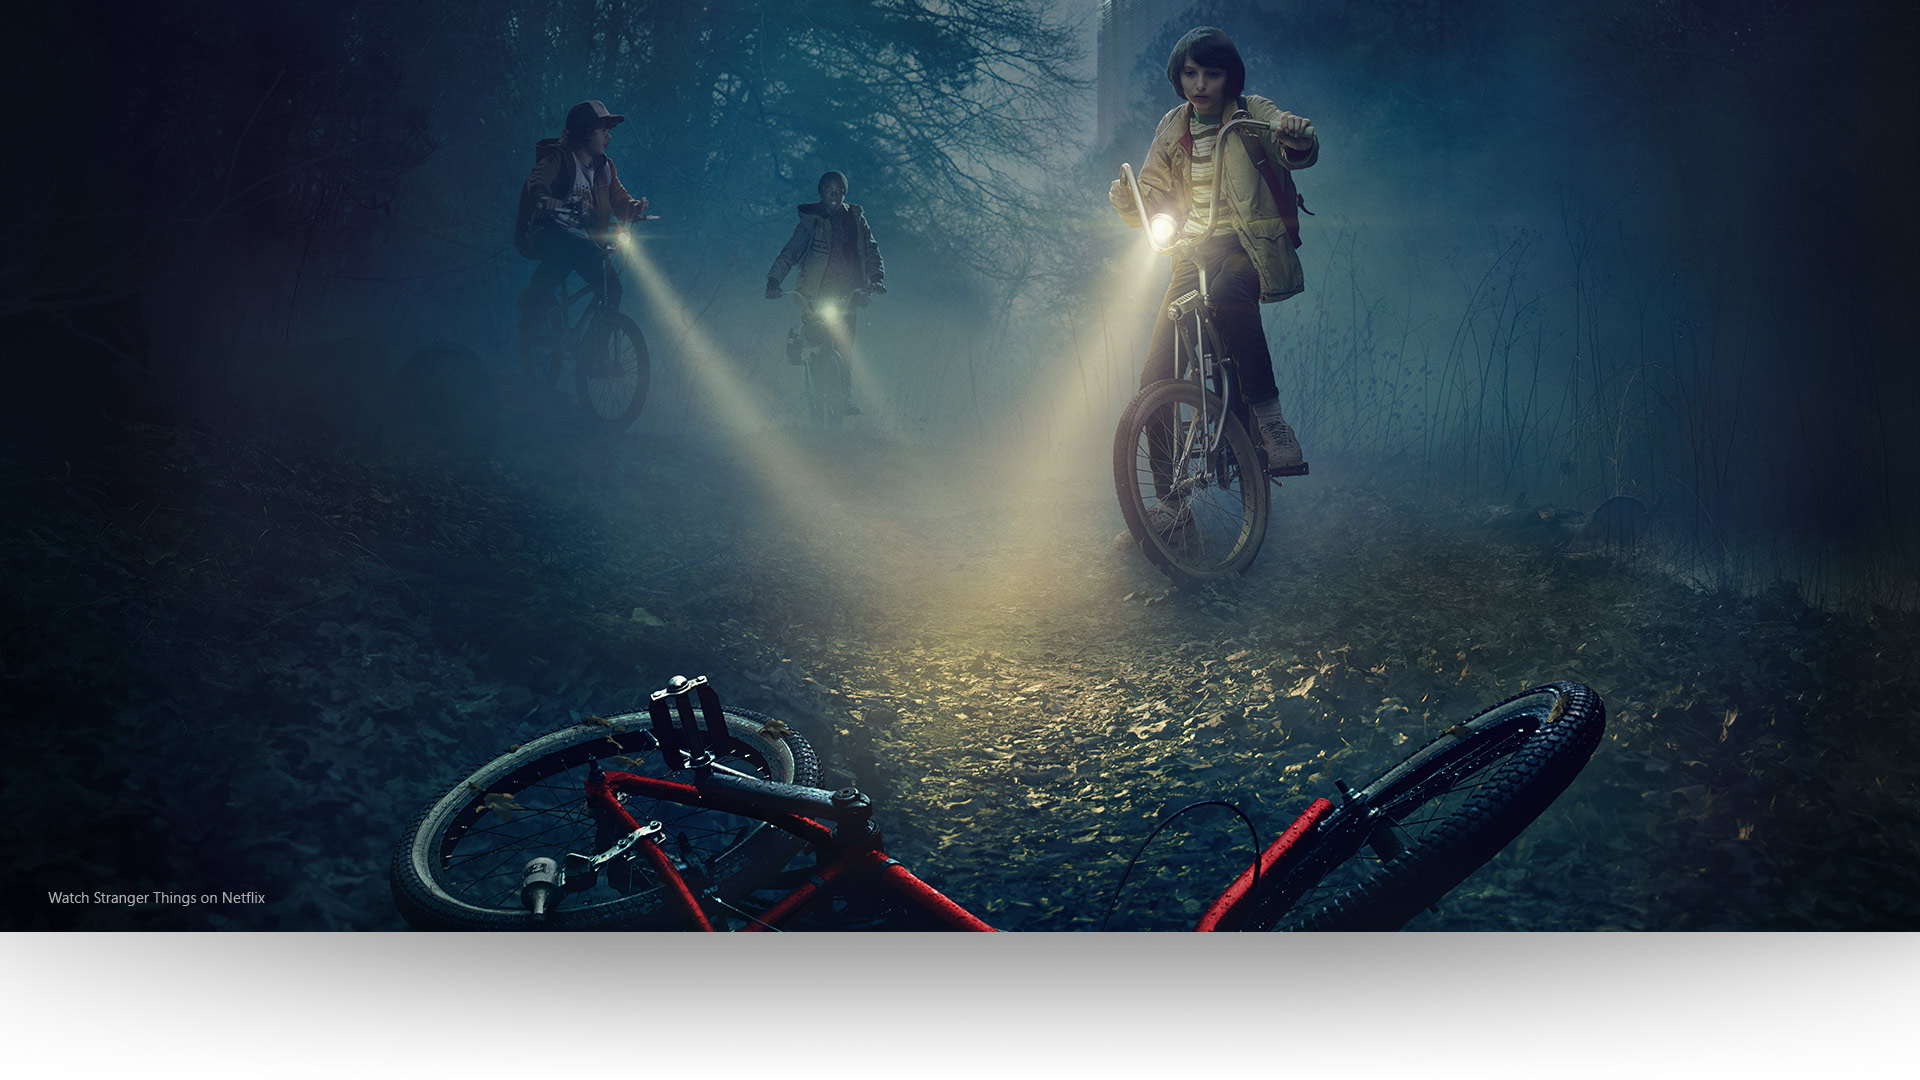 Stranger things kids discover a bike in the woods